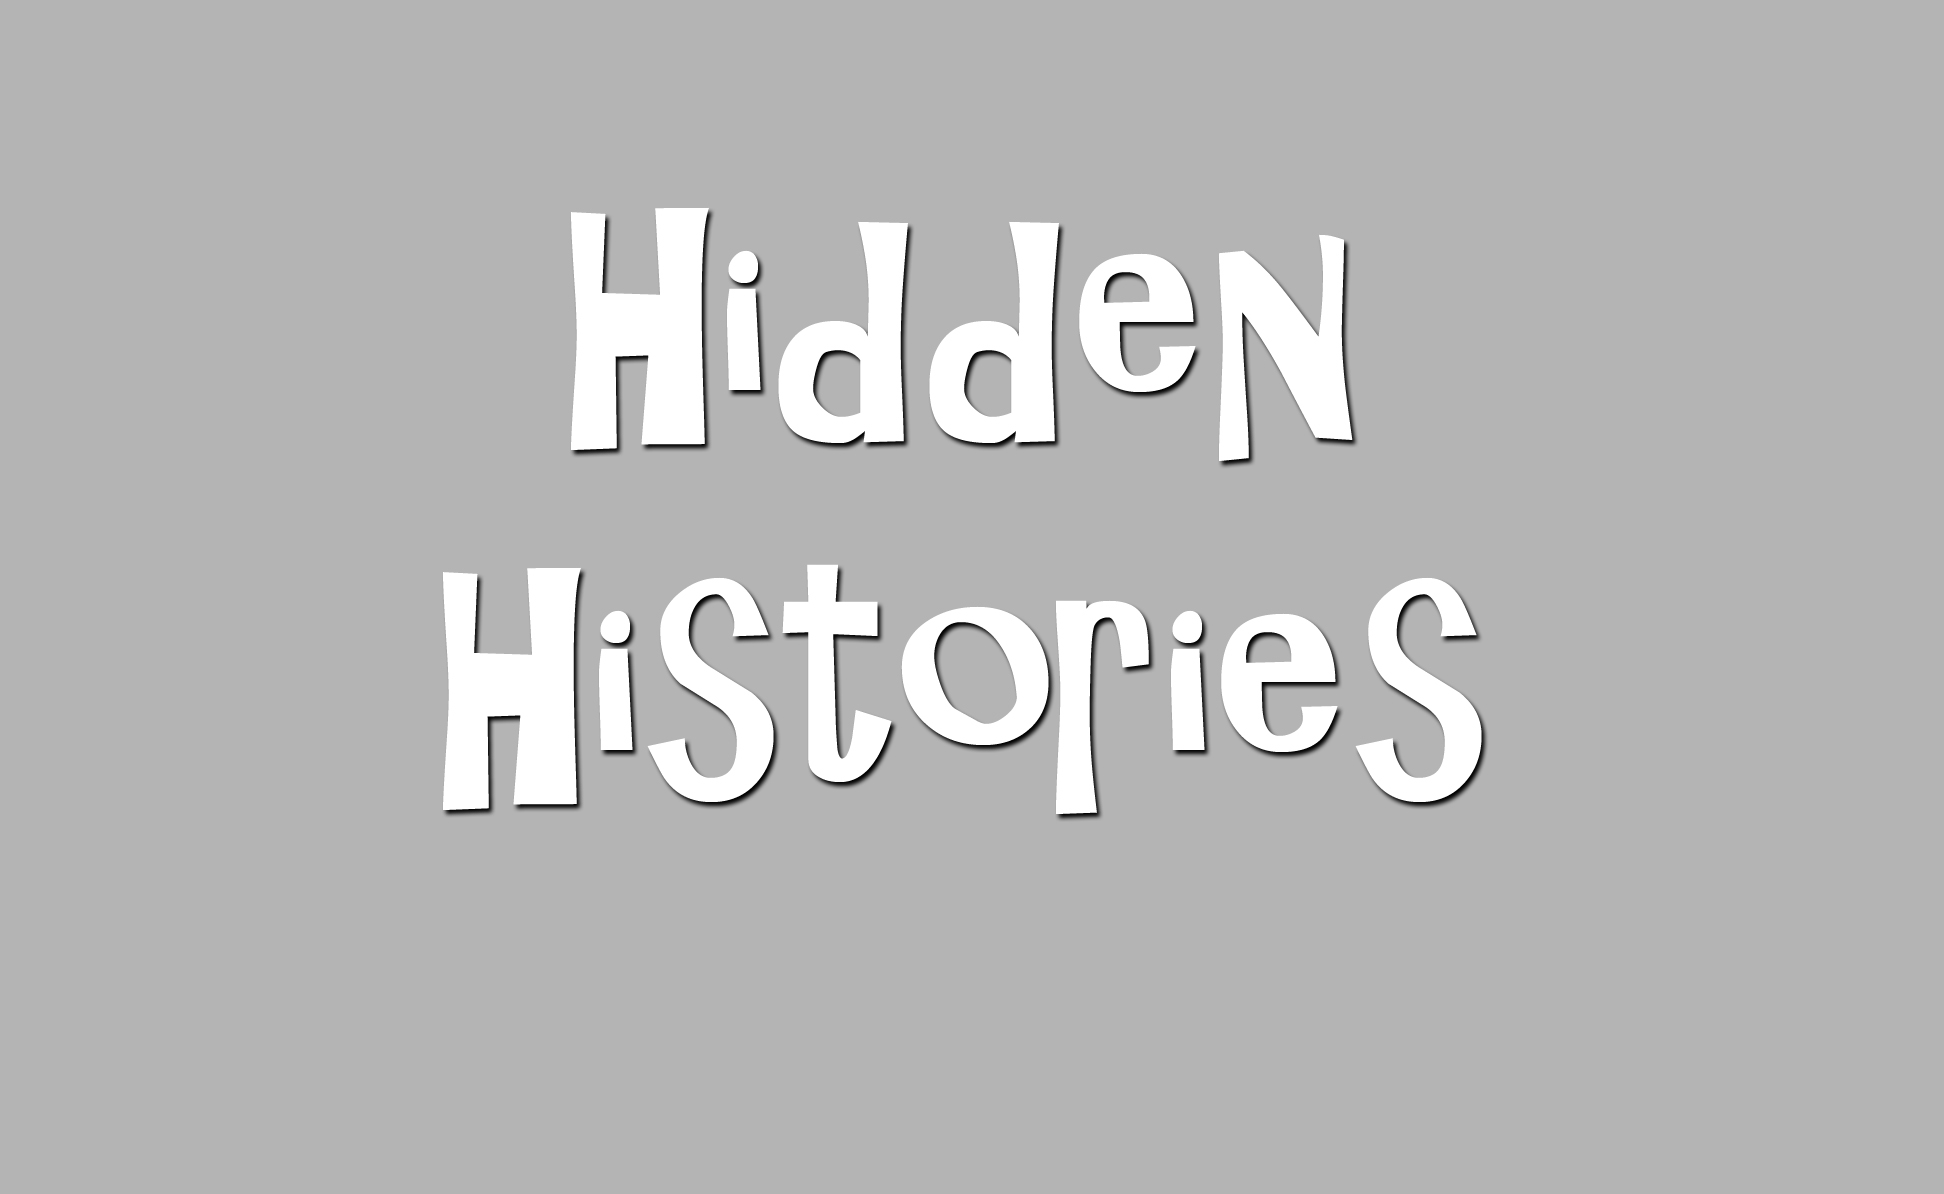 Tile4hiddenhistories